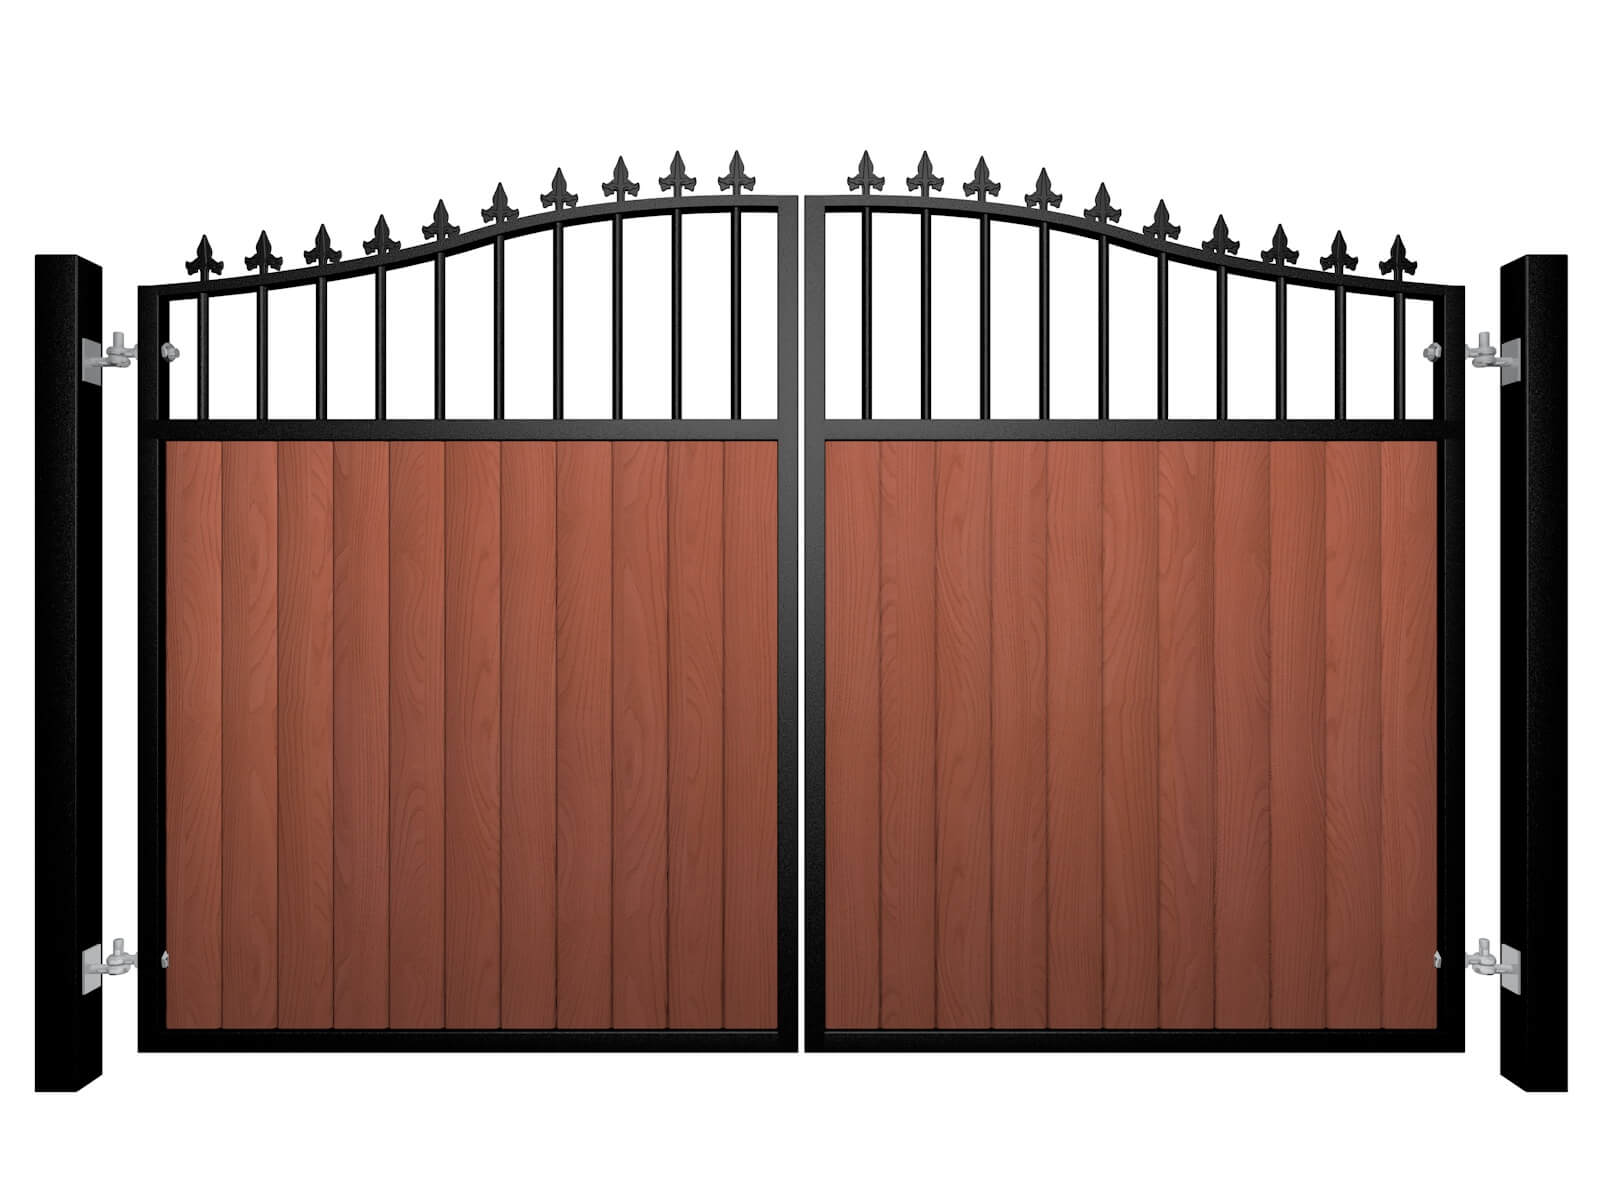 metal framed wood fill open bars bell top automated gate with finials